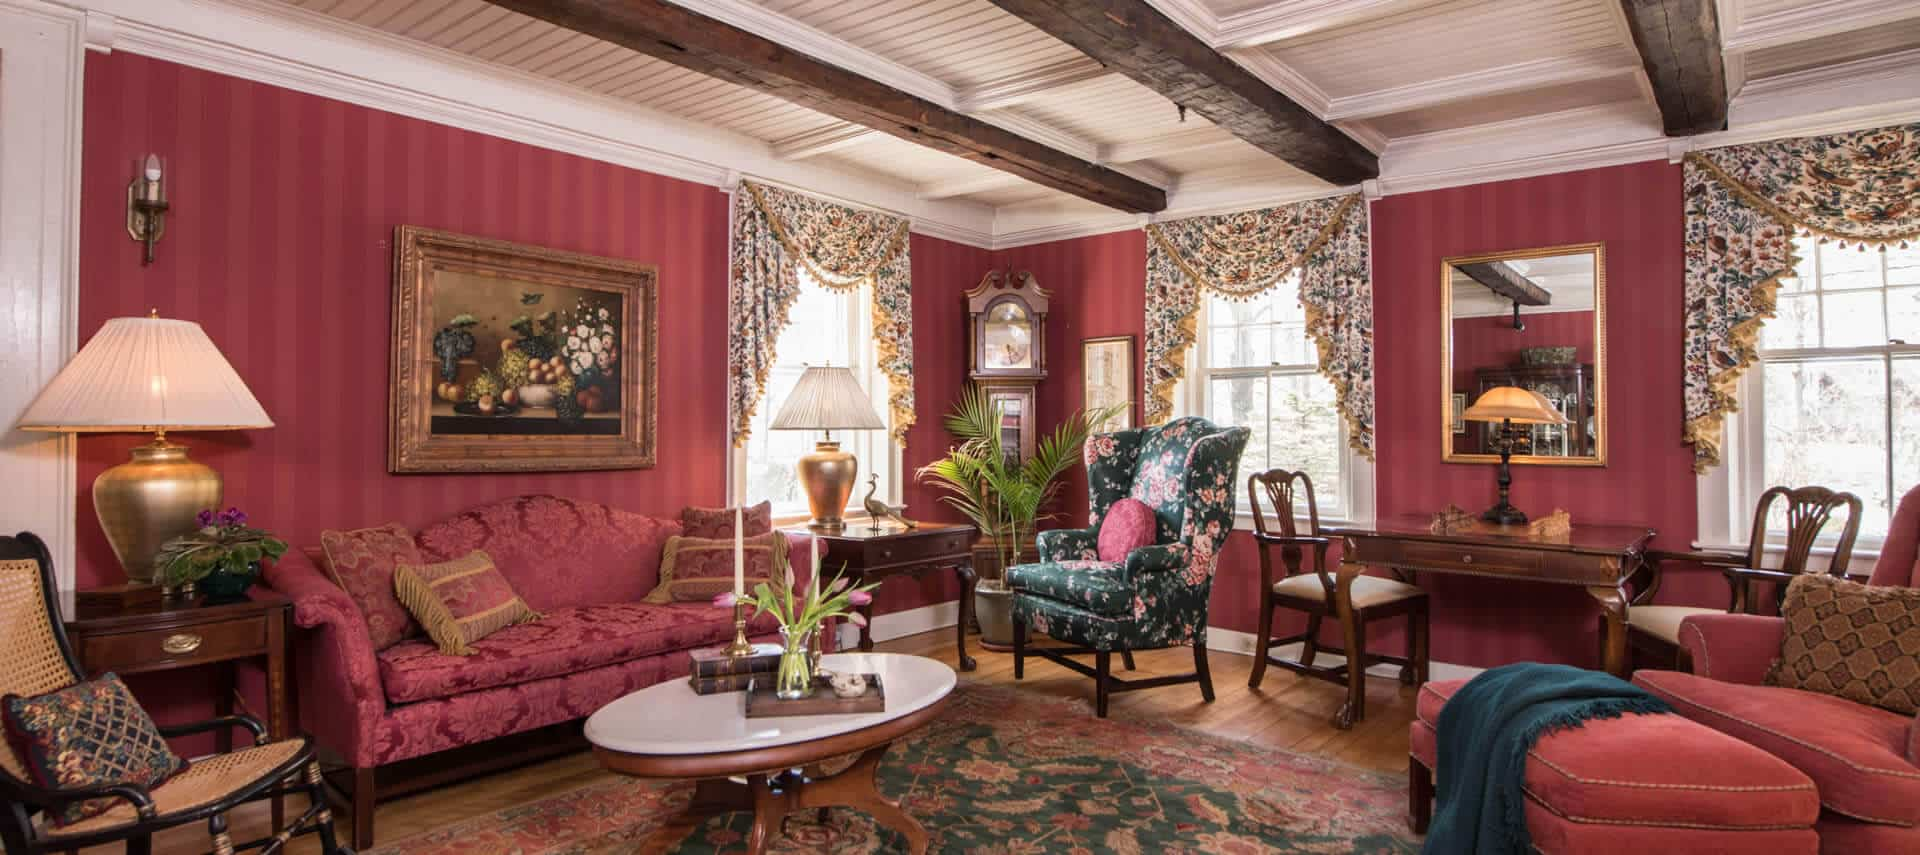 Attractive sitting room papered in red with a sofa, comfortable chairs and a small table desk.